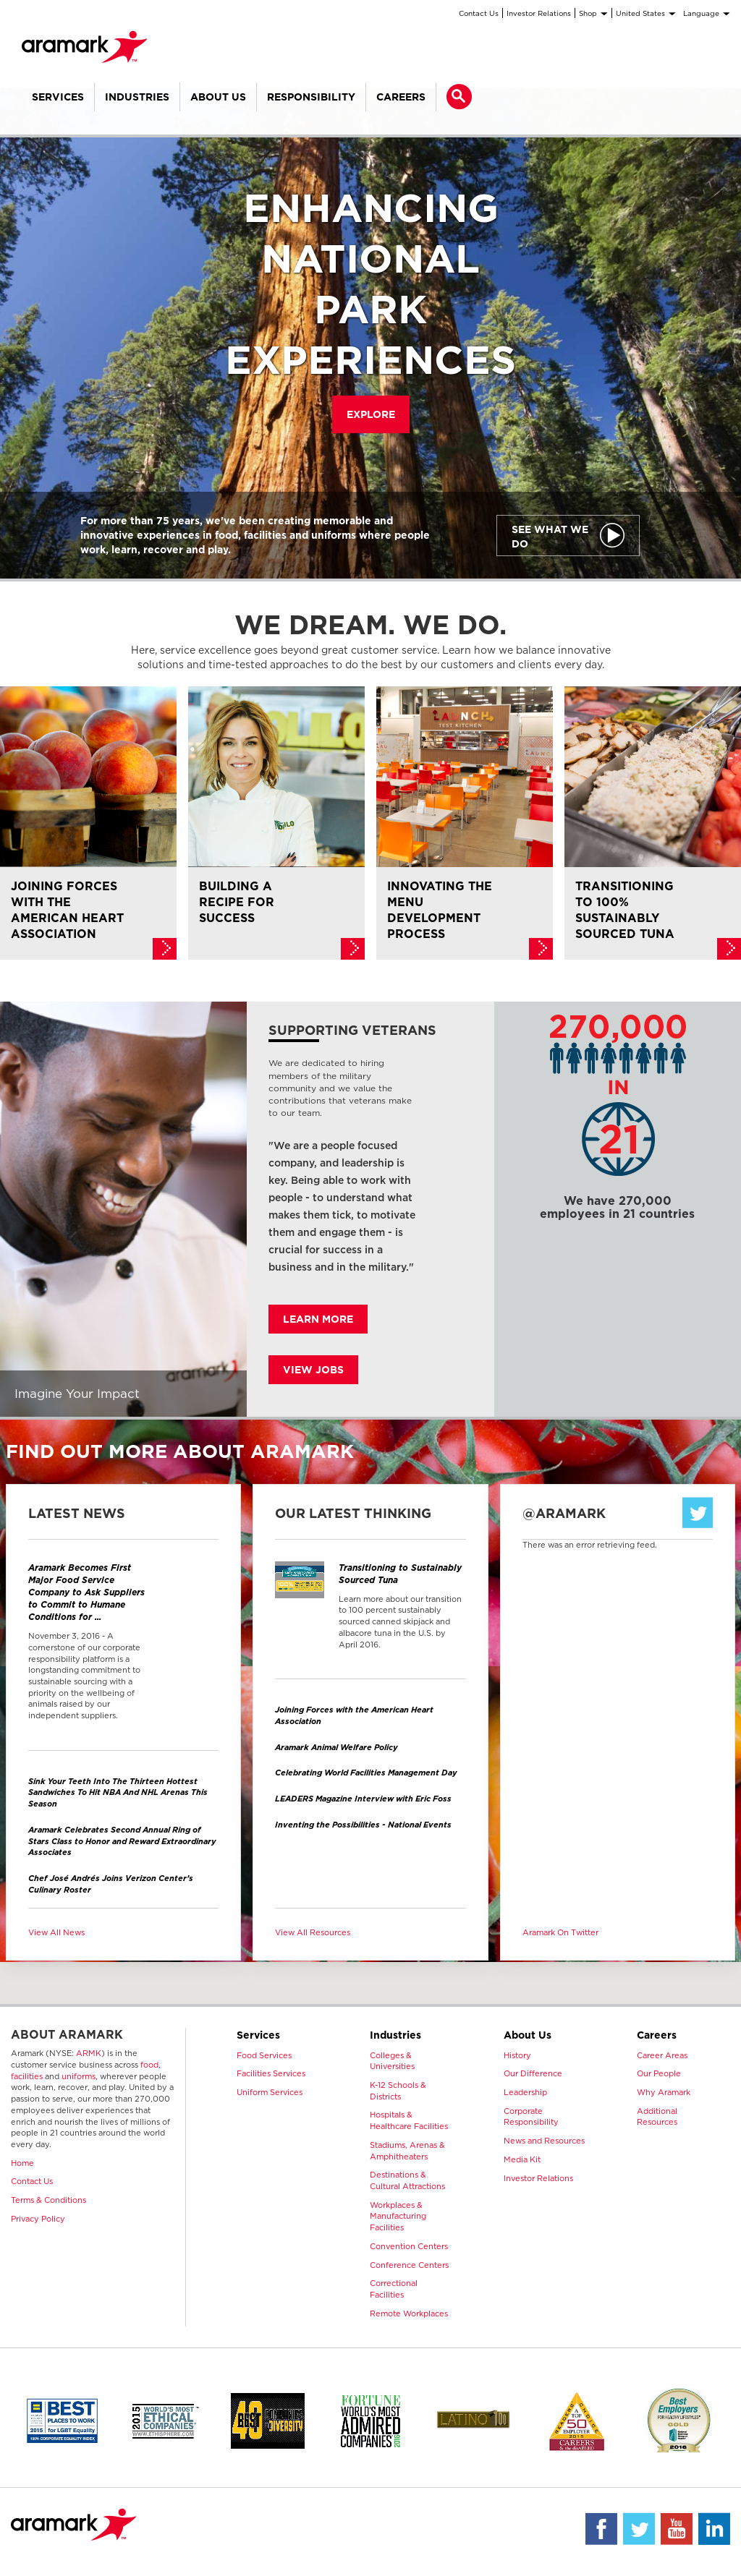 Aramark Competitors, Revenue and Employees - Owler Company